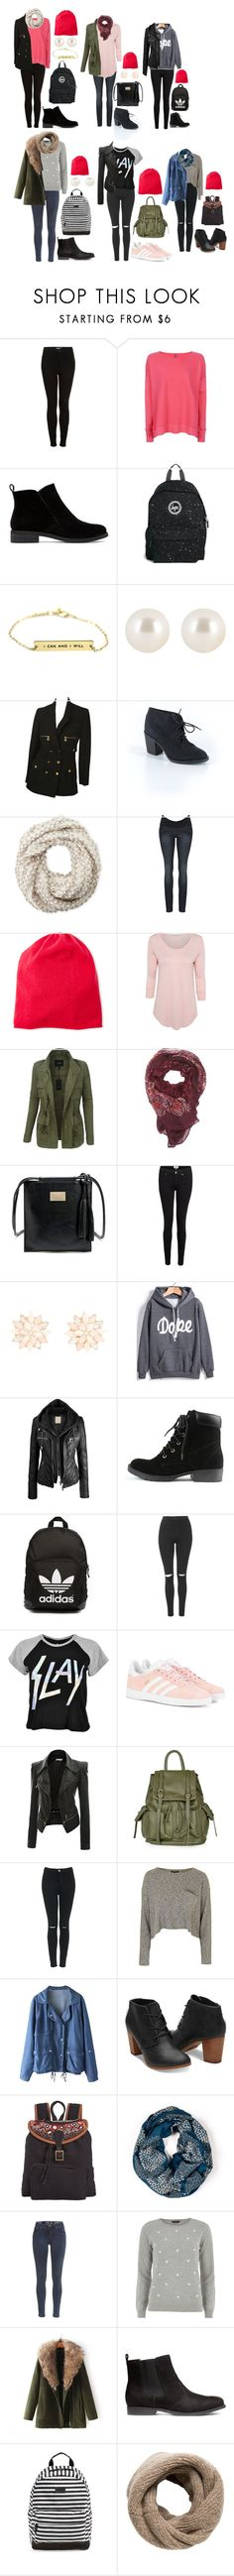 """Women's March"" by strawberryfelton on Polyvore featuring Mode, Topshop, Sweaty Betty, Lucky Brand, Hype, Henri Bendel, Chanel, H&M, Cejon und George"